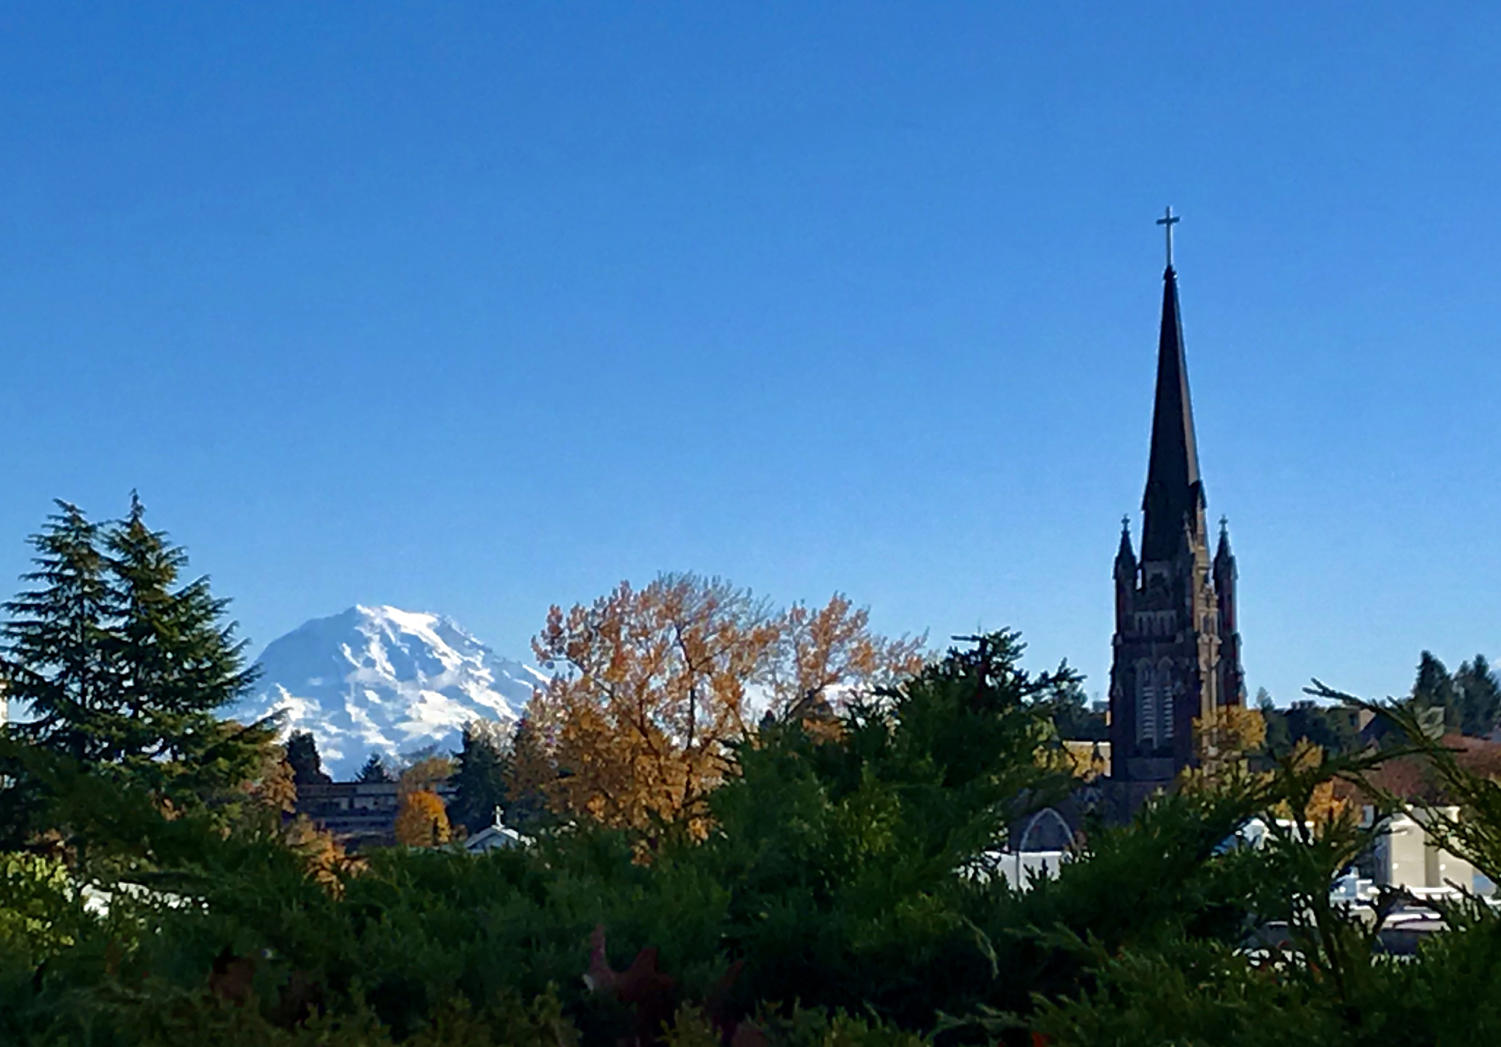 Although the height difference exceeds 14,000 feet, both Mount Rainier and Holy Rosary Catholic Church are significant elements of Tacoma's skyline.